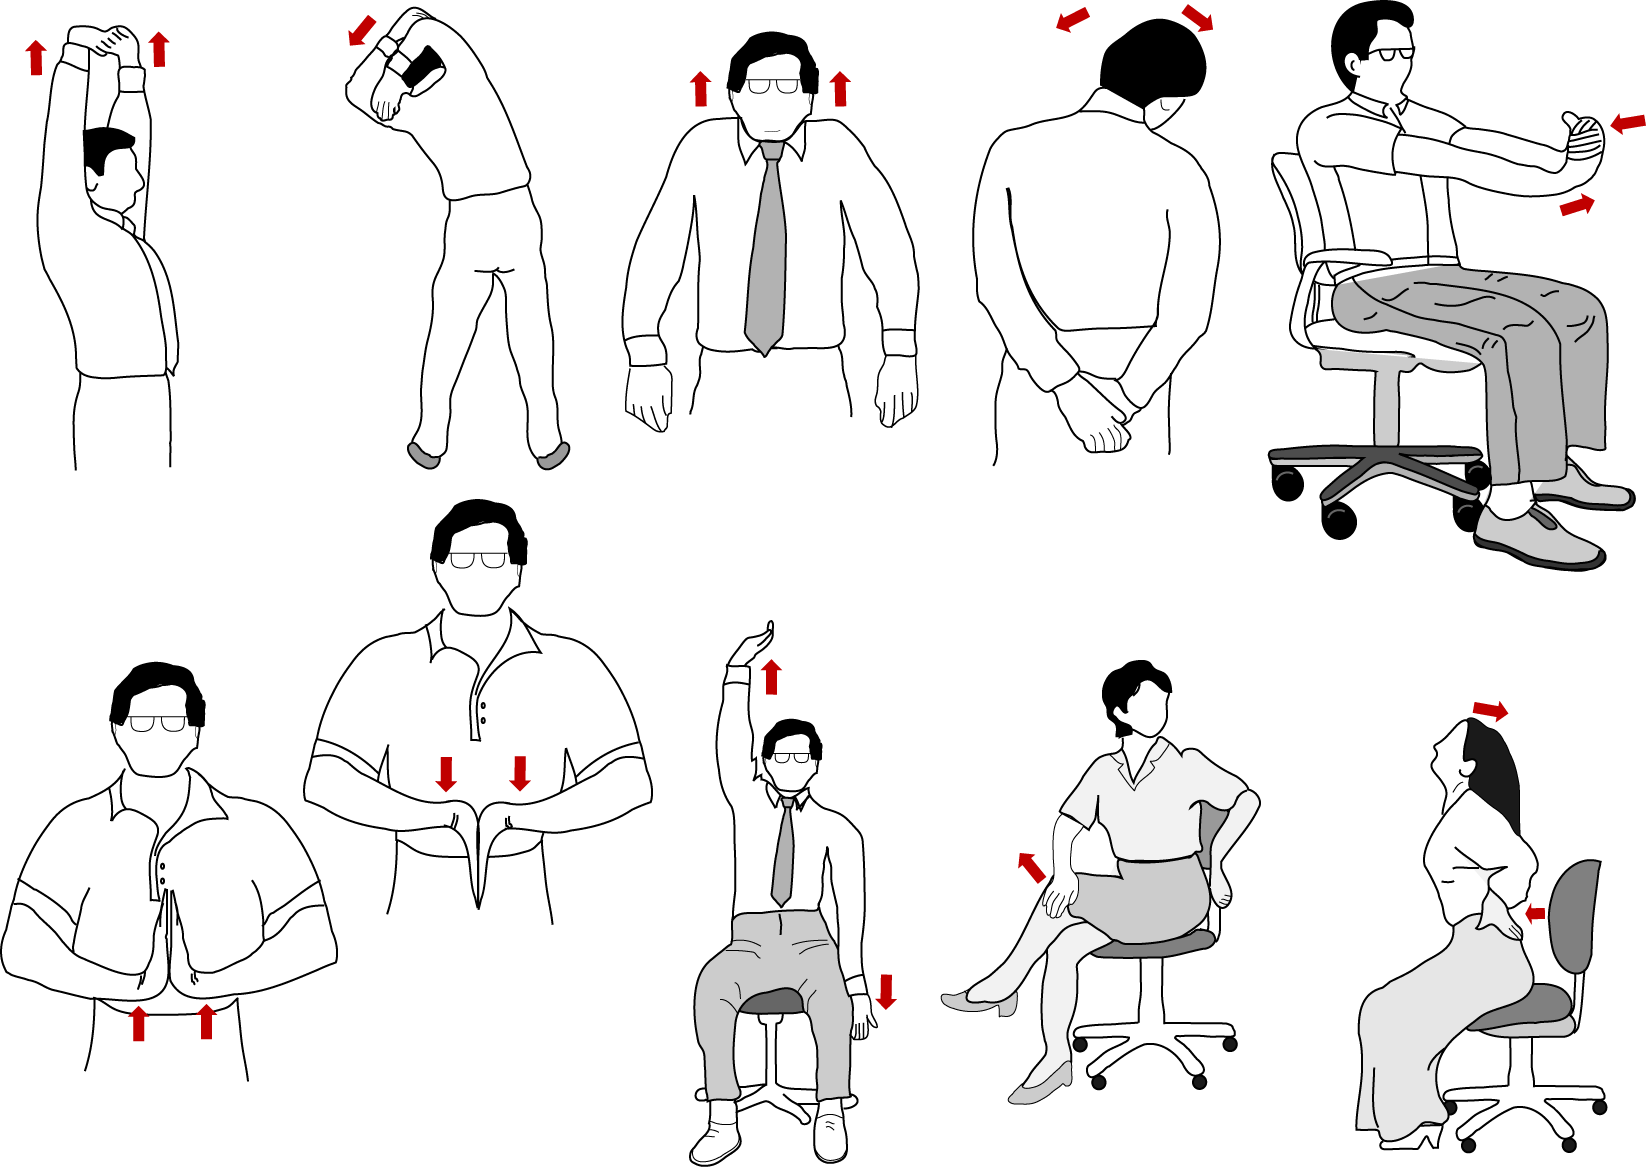 Office Exercises If You Have Trouble Staying Fit At Work These Are A Great Way To Keep Your Body Moving Right Desk